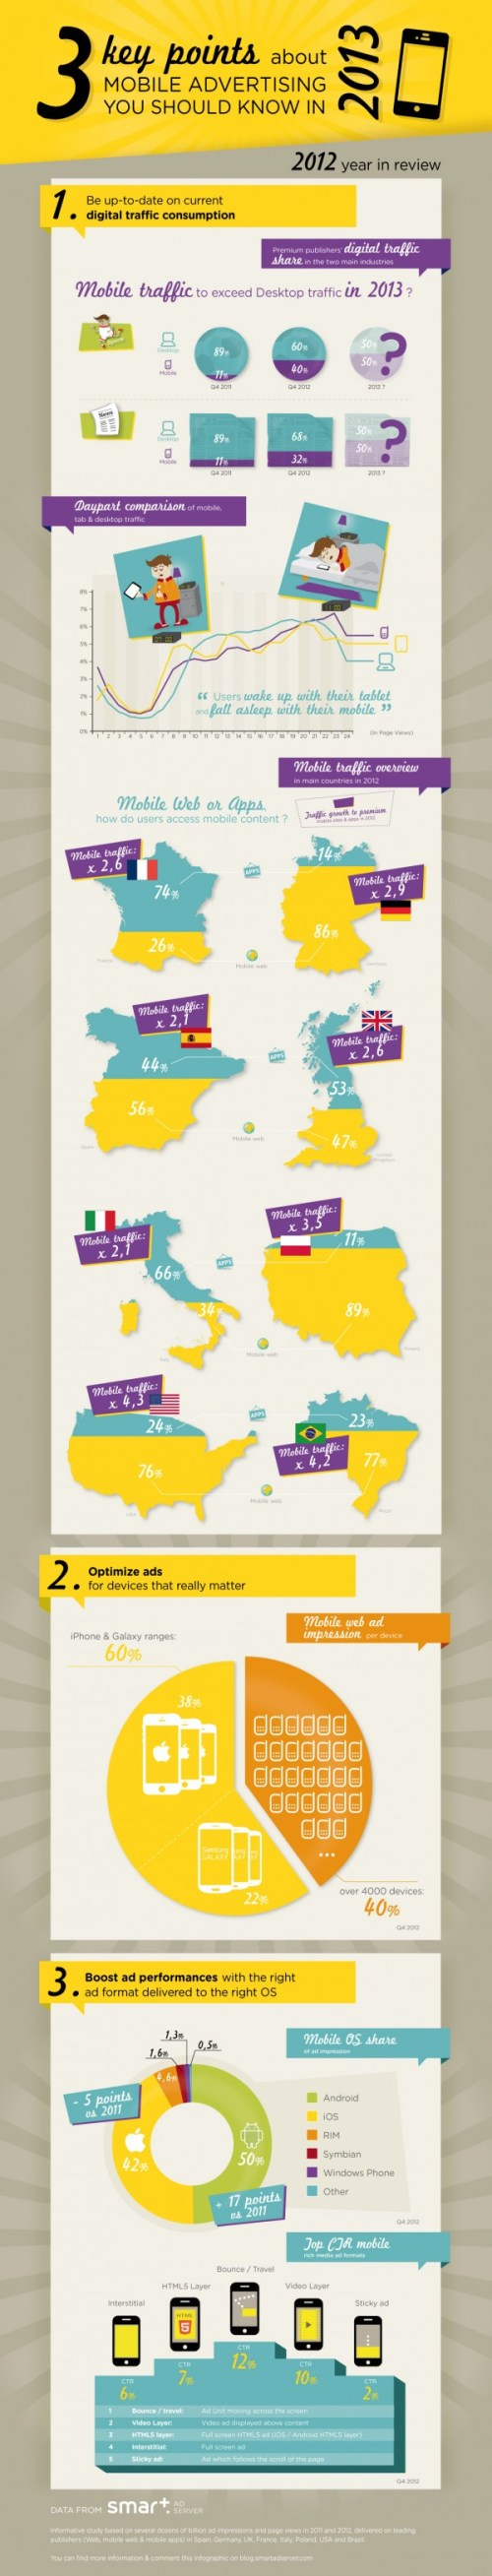 Infographic-Mobile-Advertising-2013-600x3141